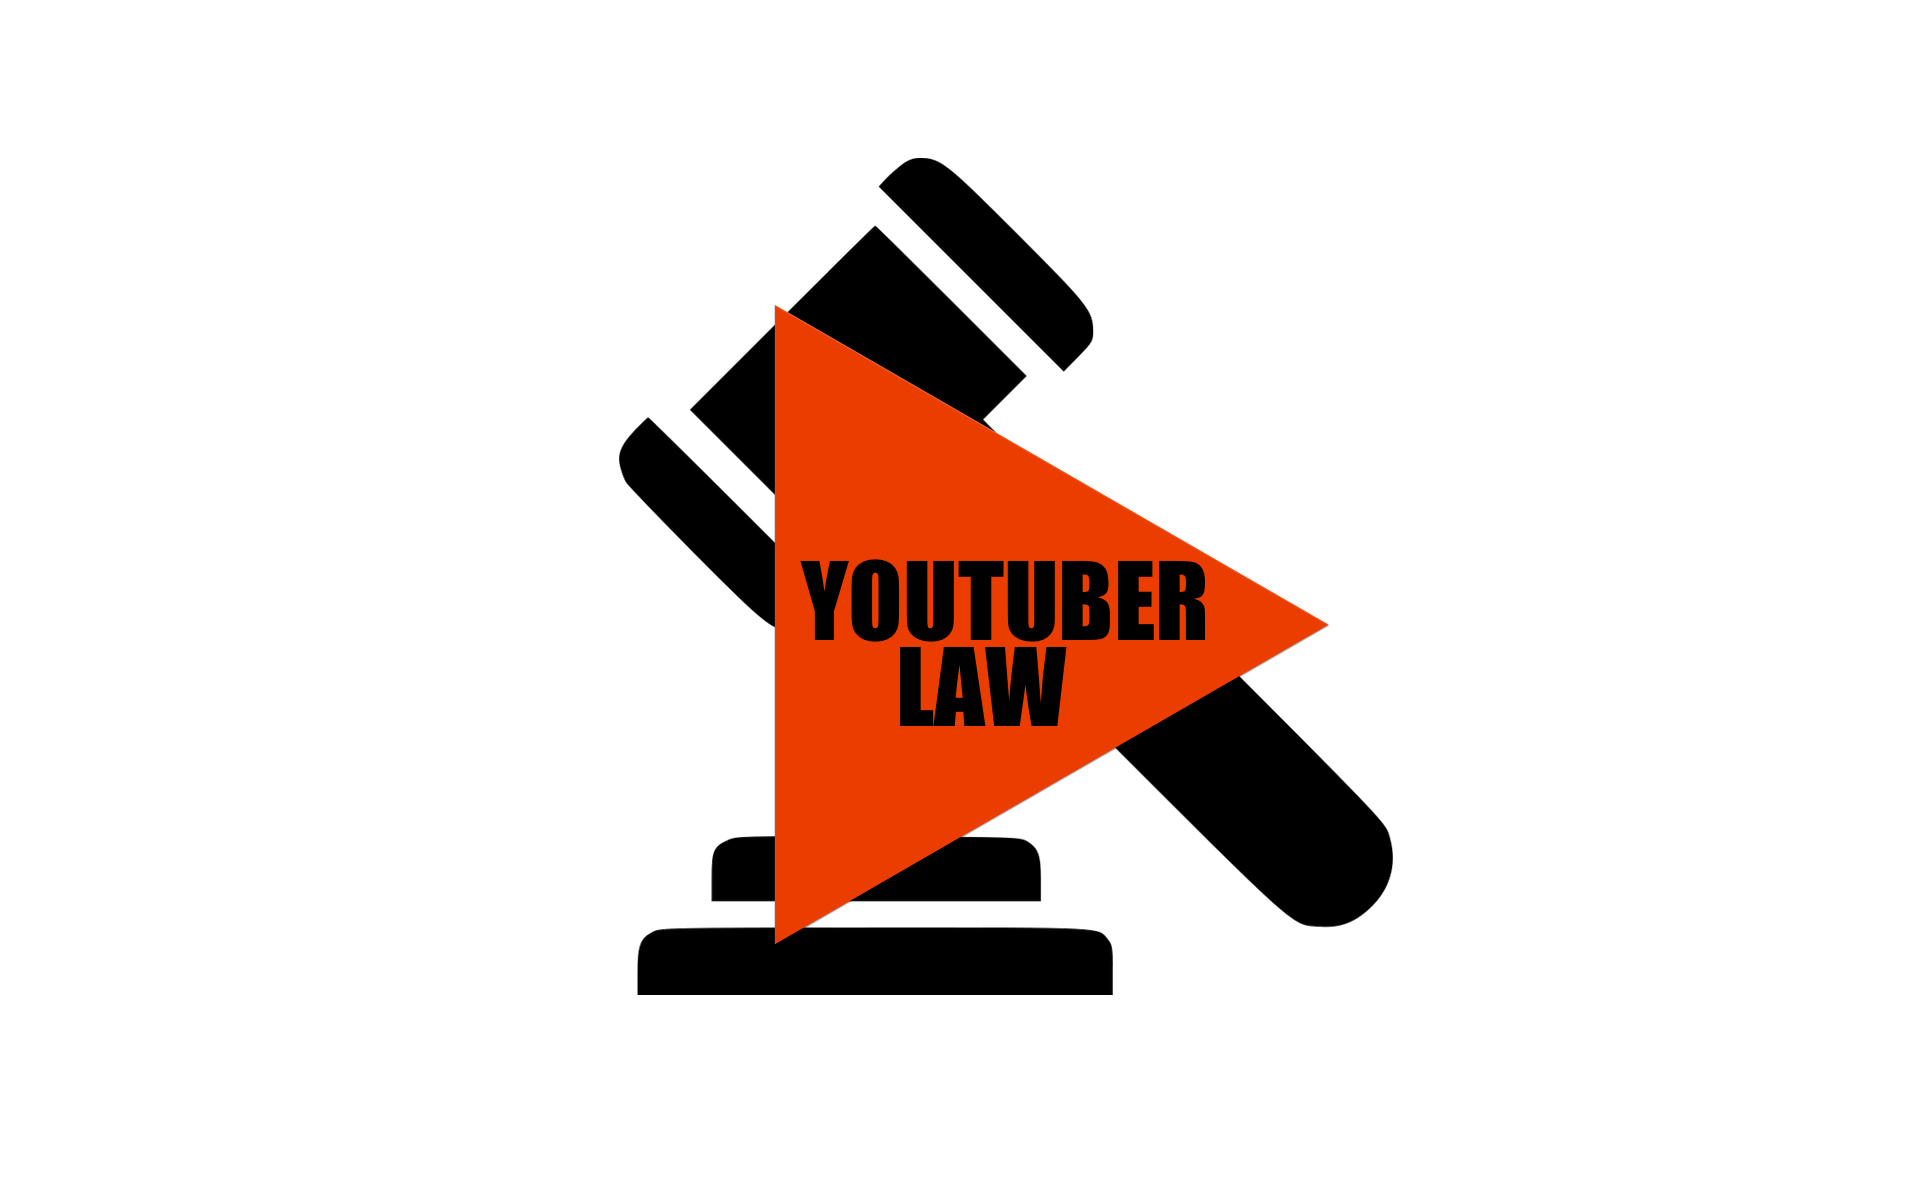 YOUTUBER LAW ACADEMY